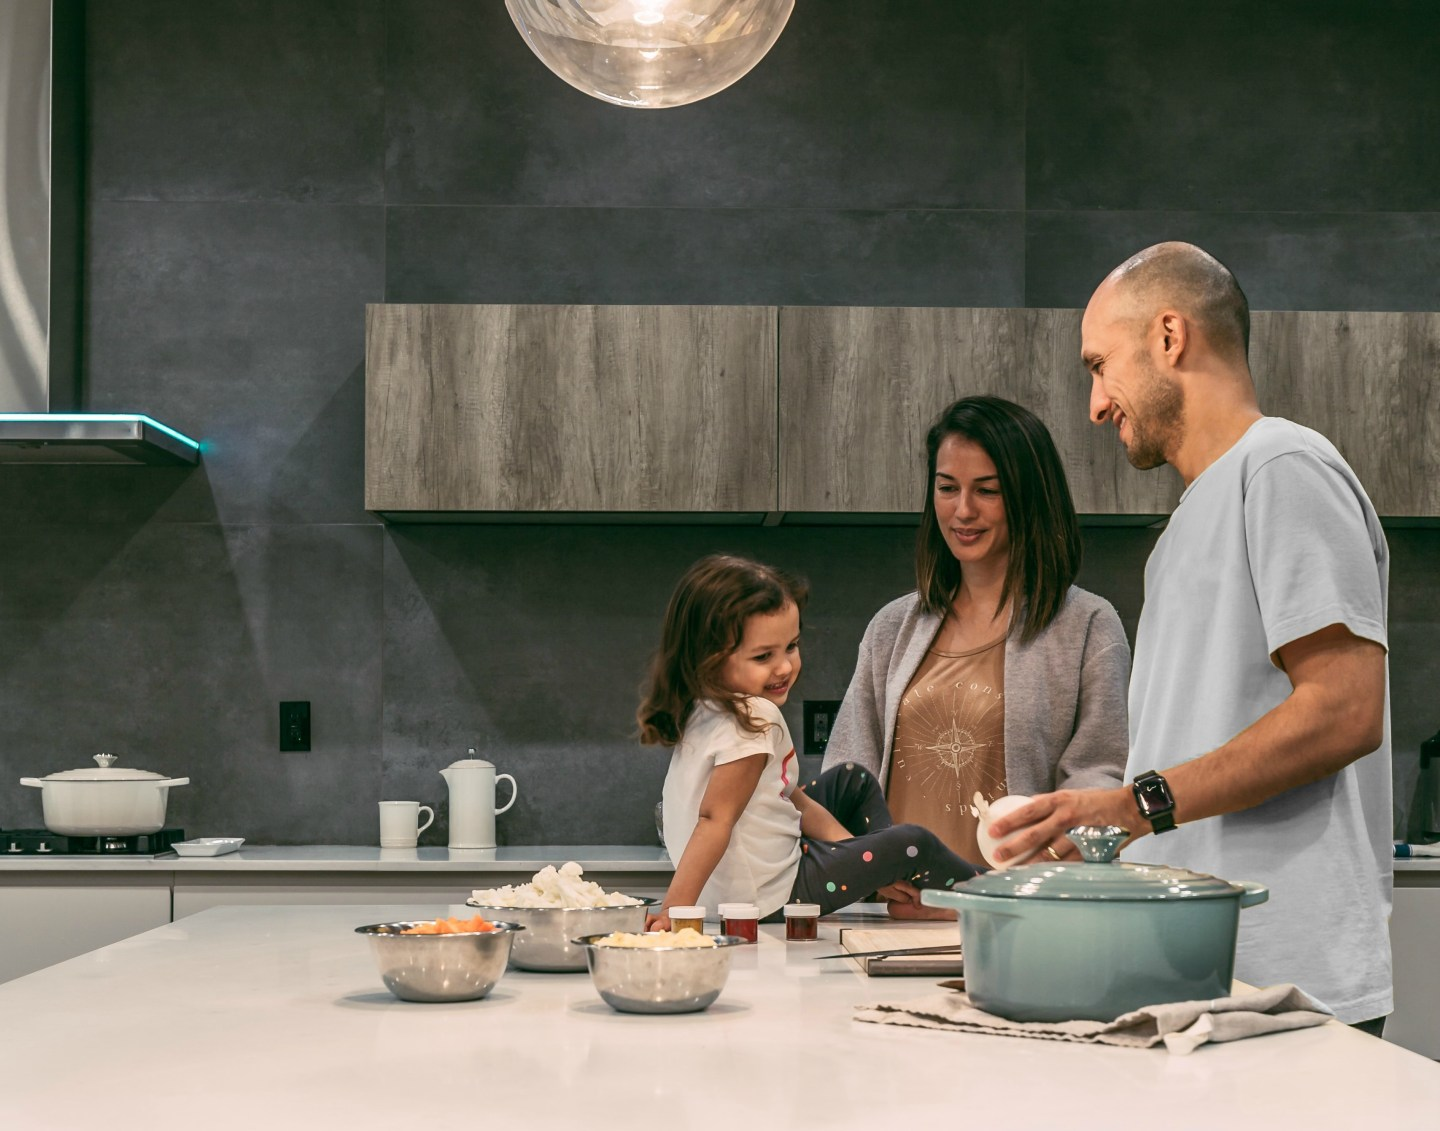 a family making dinner together in the kitchen